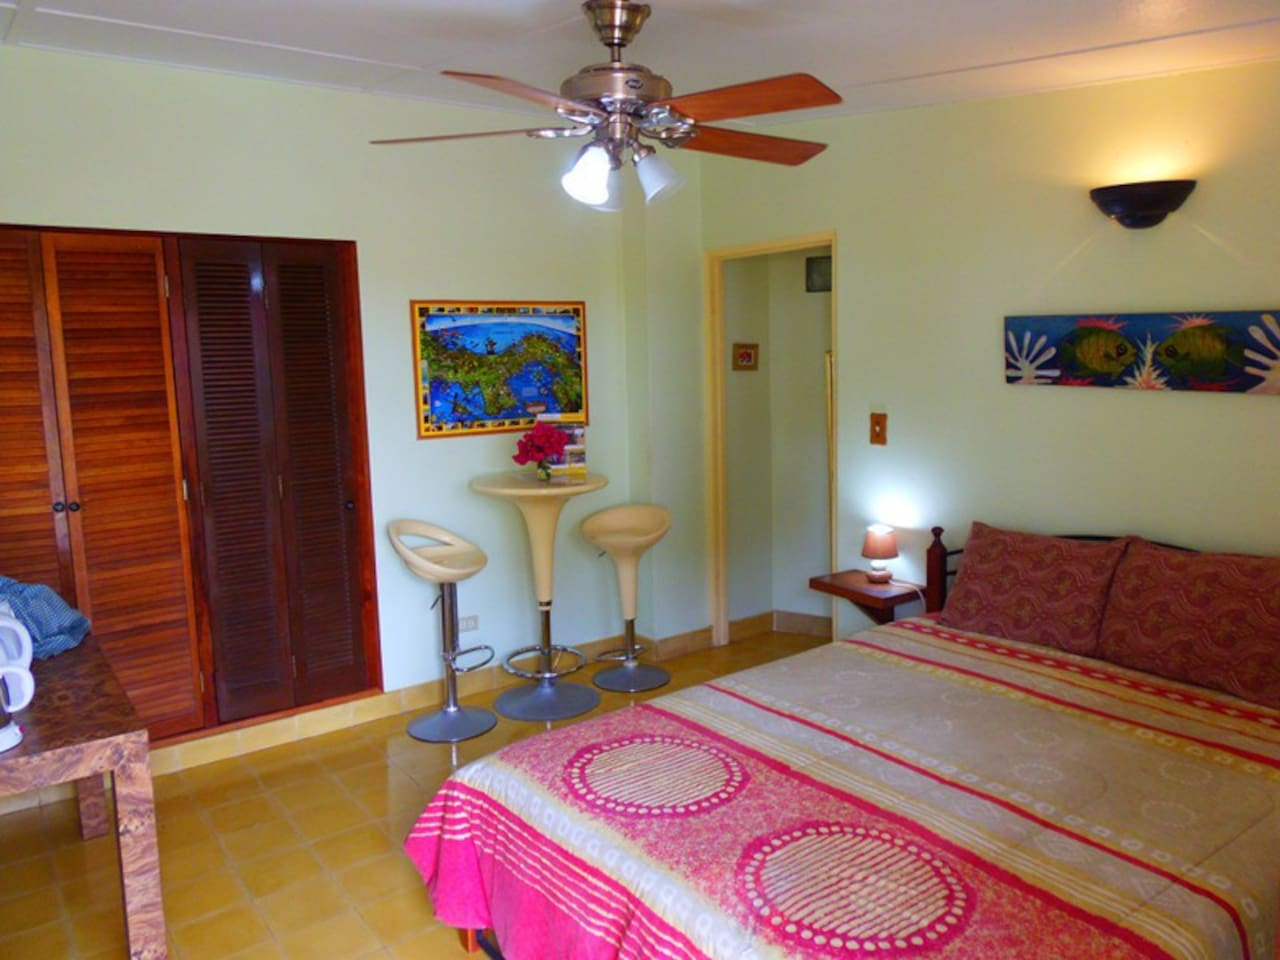 Private room with A/C, On-suite bathroom, free Wi-Fi